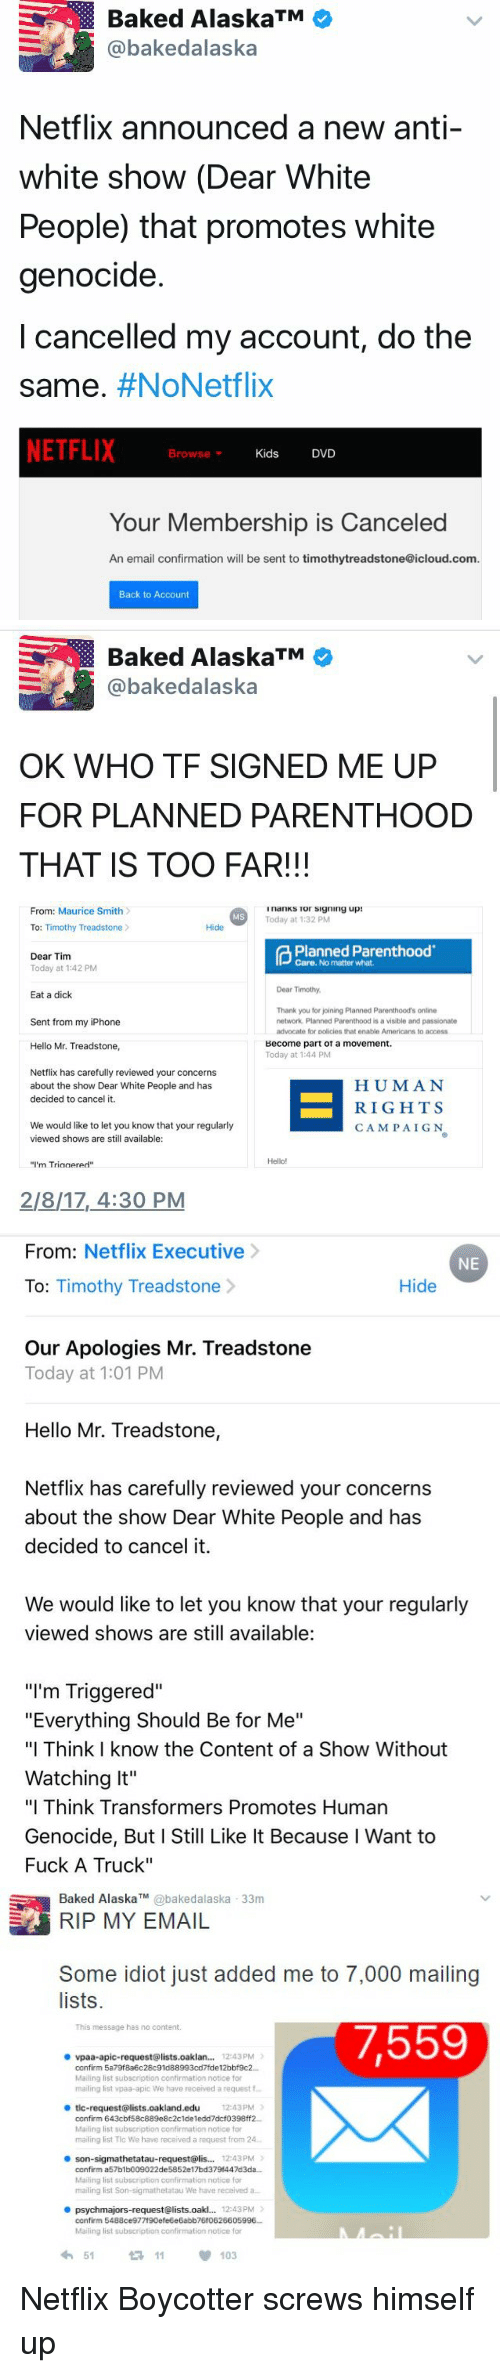 """Subscripter: Baked AlaskaTM  @bakedalaska  Netflix announced a new anti-  white show (Dear White  People) that promotes white  genocide.  cancelled my account, do the  Same  #NoNetflix  NETFLIX  Browse  Kids  DVD  v  Your Membership is Canceled  An email confirmation will be sent to timothytreadstone@icloud.com.  Back to Account   Baked AlaskaTM  bakedalaska  OK WHO TF SIGNED ME UP  FOR PLANNED PARENTHOOD  THAT IS TOO FAR!!!  From: Maurice Smith  InanKS Tor Signing up:  Today at 1:32 PM  Hide  To: Timothy Treadstone  Planned Parenthood  Dear Tim  Care. No matter what.  Today at 1:42 PM  Dear Timothy,  Eat a dick  Thank you for joining Planned Parenthood's online  Sent from my iPhone  network, Planned Parenthood is a visible and passionate  advocate for policies that enable Americans to access  Become part ot a movement.  Hello Mr. Treadstone,  Today at 1:44 PM  Netflix has carefully reviewed your concerns  HUMAN  about the show Dear White People and has  decided to cancel it.  RIGHTS  We would like to let you know that your regularly  CAMPAIGN  viewed shows are still available:  """"I'm Triaaered""""  2/8/17, 4:30 PM   From  Netflix Executive  NE  Hide  To  Timothy Treadstone  Our Apologies Mr. Treadstone  Today at 1:01 PM  Hello Mr. Treadstone,  Netflix has carefully reviewed your concerns  about the show Dear White People and has  decided to cancel it.  We would like to let you know that your regularly  viewed shows are still available:  """"I'm Triggered""""  """"Everything Should Be for Me""""  """"I Think know the Content of a Show Without  Watching It""""  """"I Think Transformers Promotes Human  Genocide, But I Still Like It Because l Want to  Fuck A Truck""""   Baked Alaska bakedalaska 33m  MY EMAIL  Some idiot just added me to 7,000 mailing  lists.  This message has no content.  7,559  vpaa-apic-request@lists.oaklan... 12:43PM  Mailing list subscription confirmation notice for  mailing list vpaa-apic We have reoeived a request t  e tic-request Alists cakland.edu 1243PM  confirm Mailing """